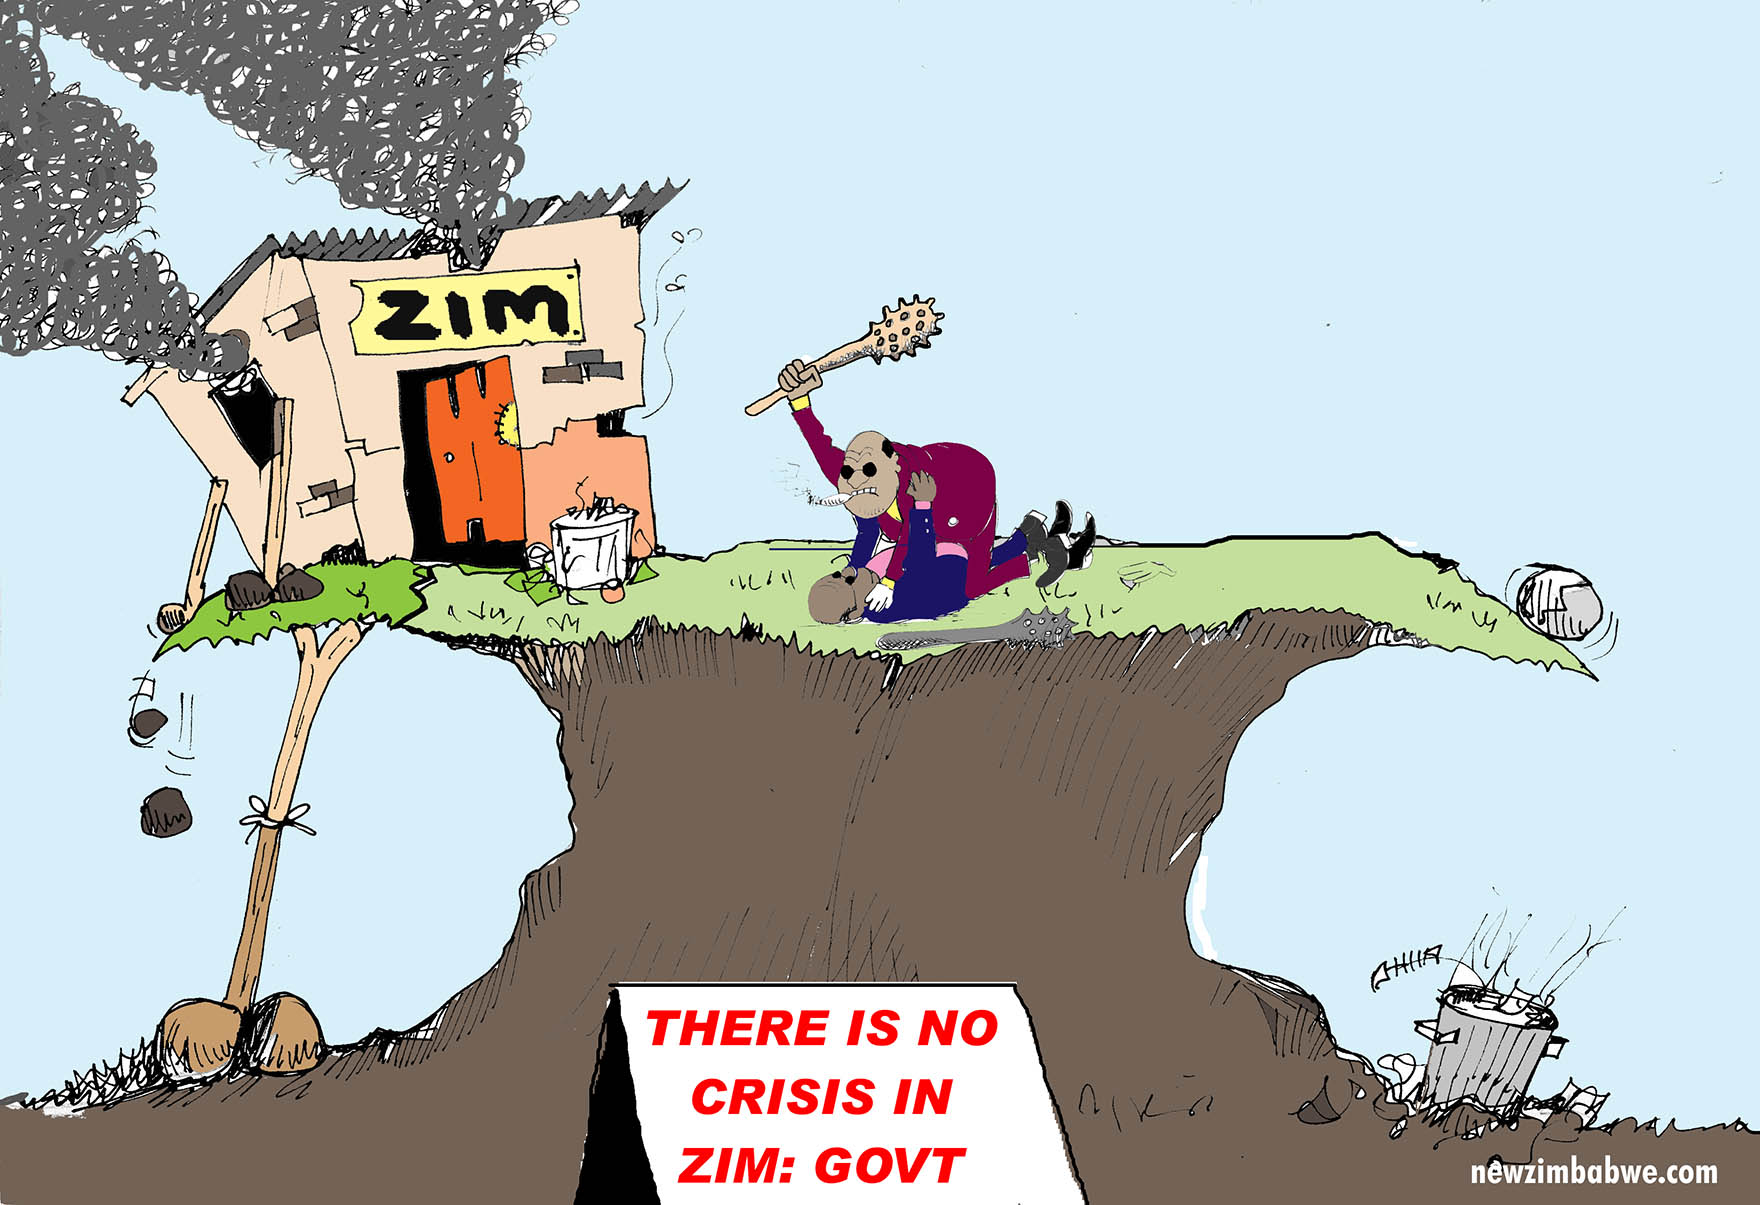 There is no crisis in Zimbabwe